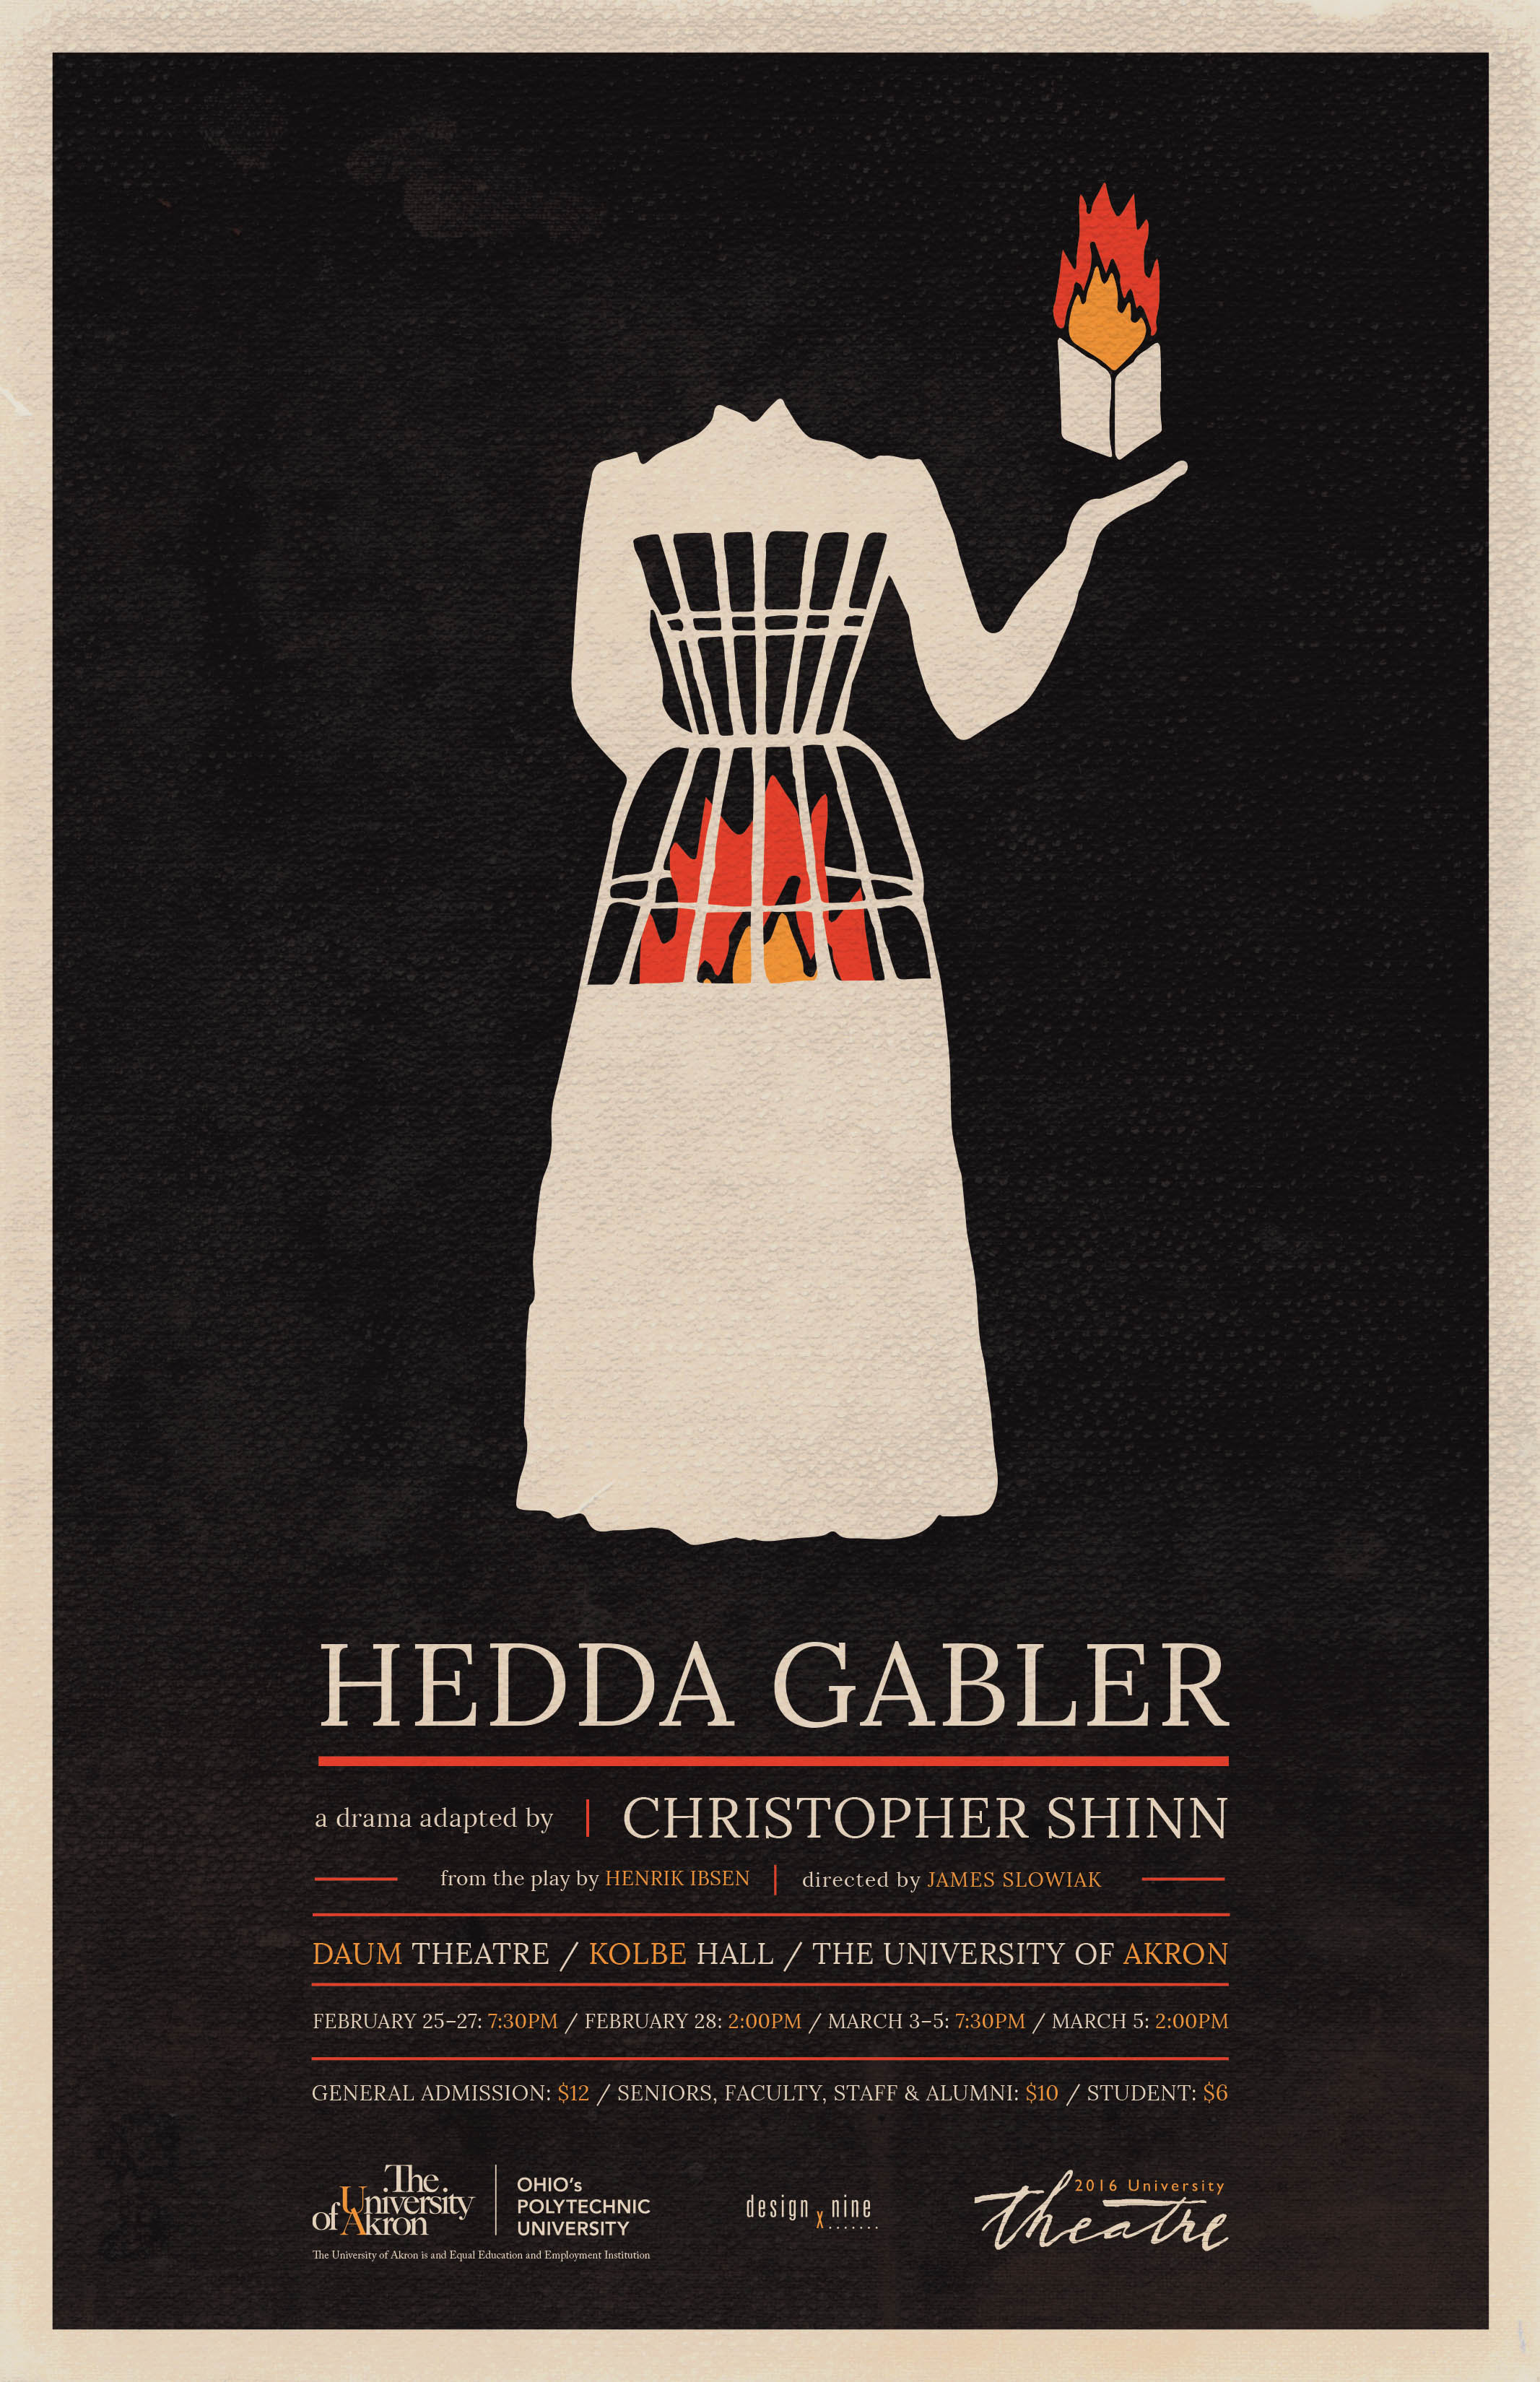 hedda gabler analysis This study guide consists of approximately 61 pages of chapter summaries, quotes, character analysis, themes, and more - everything you need to sharpen your knowledge of hedda gabler hedda gabler, published in 1890, was first performed in munich, germany, on january 31, 1891, and over the next.